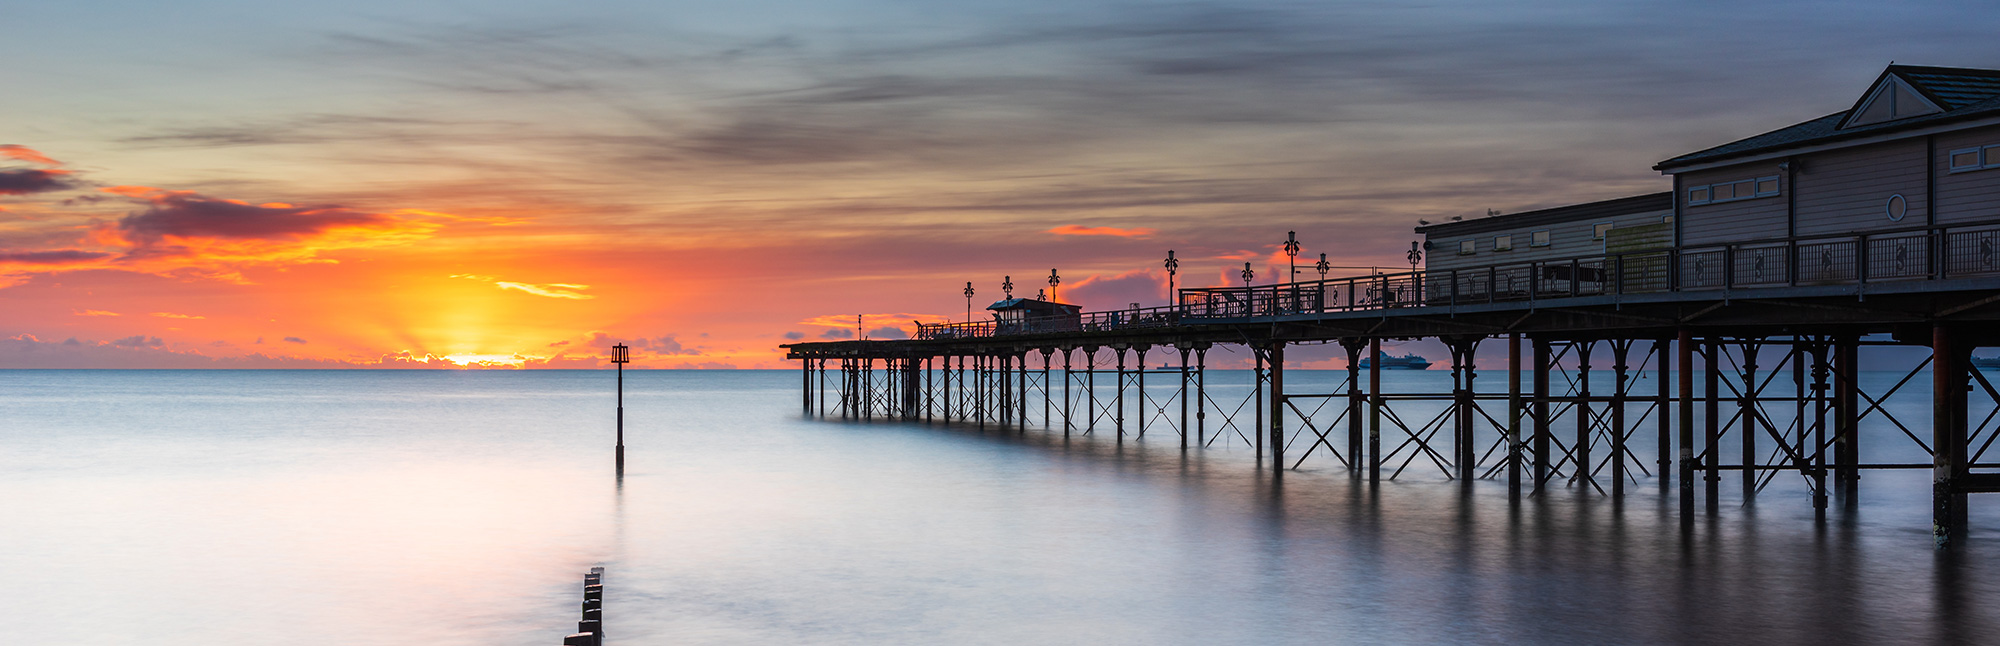 Teignmouth Pier And Sunset